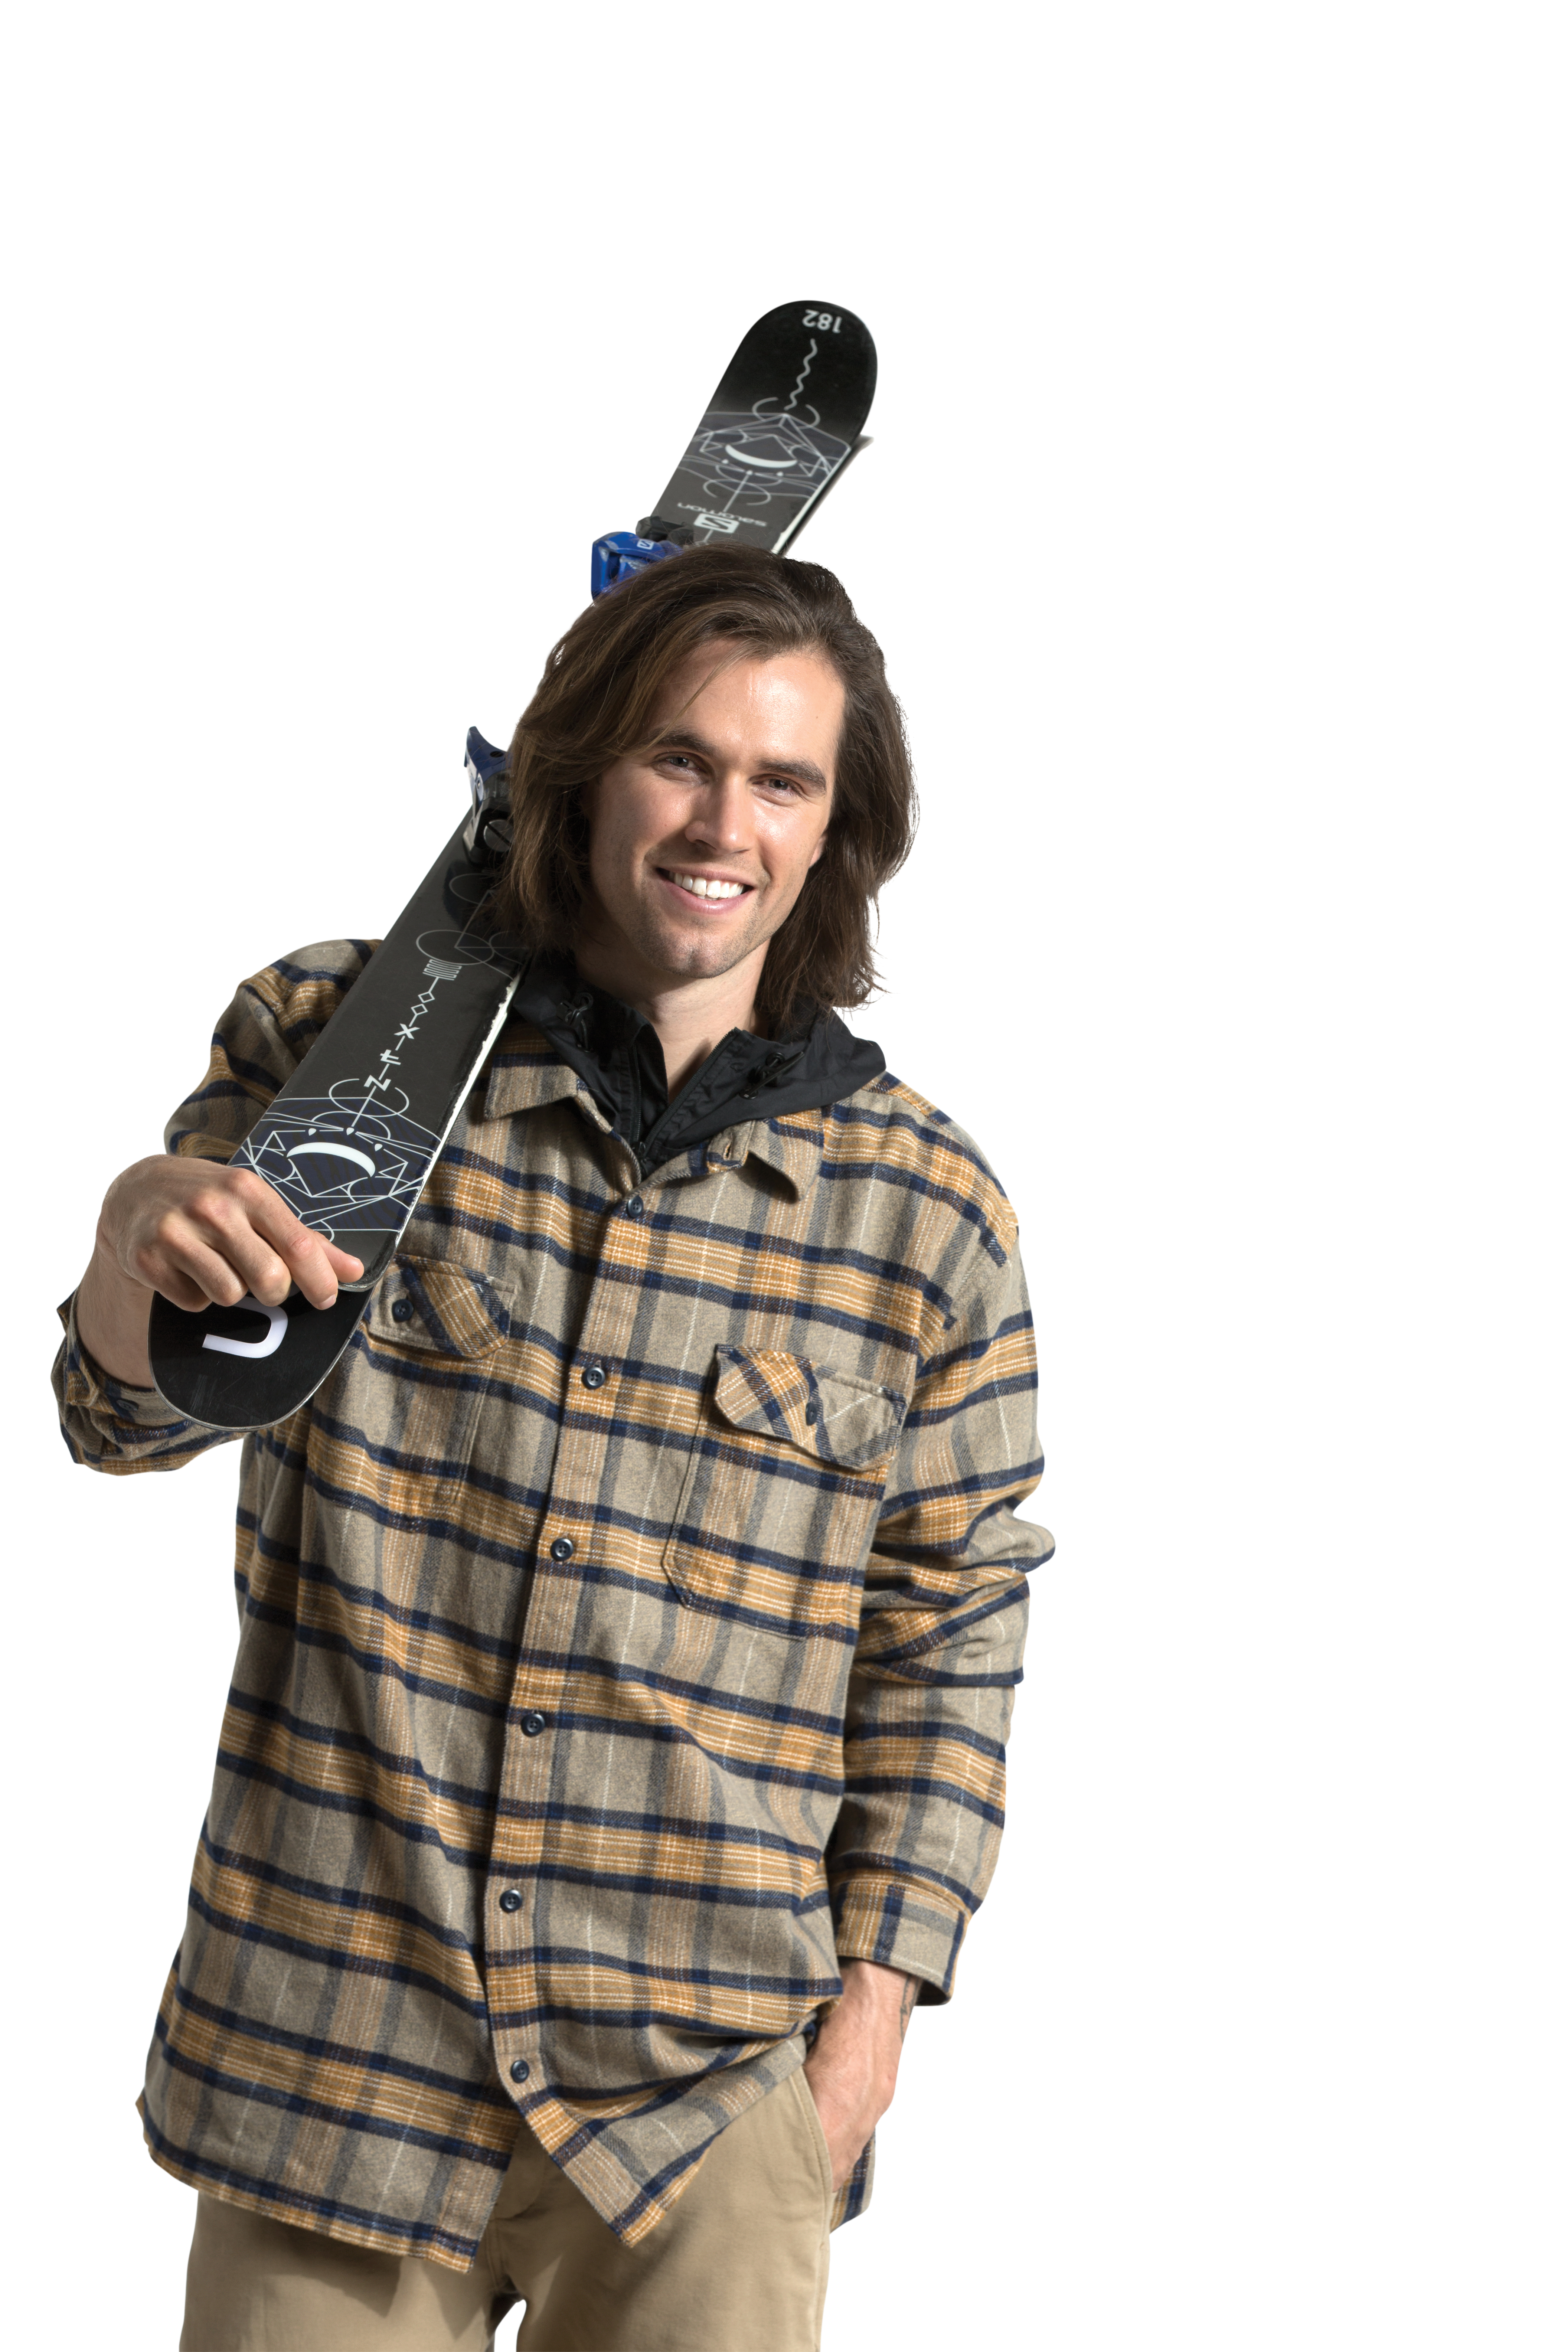 Great Clips Sponsoring Olympic Freeskier Bobby Brown